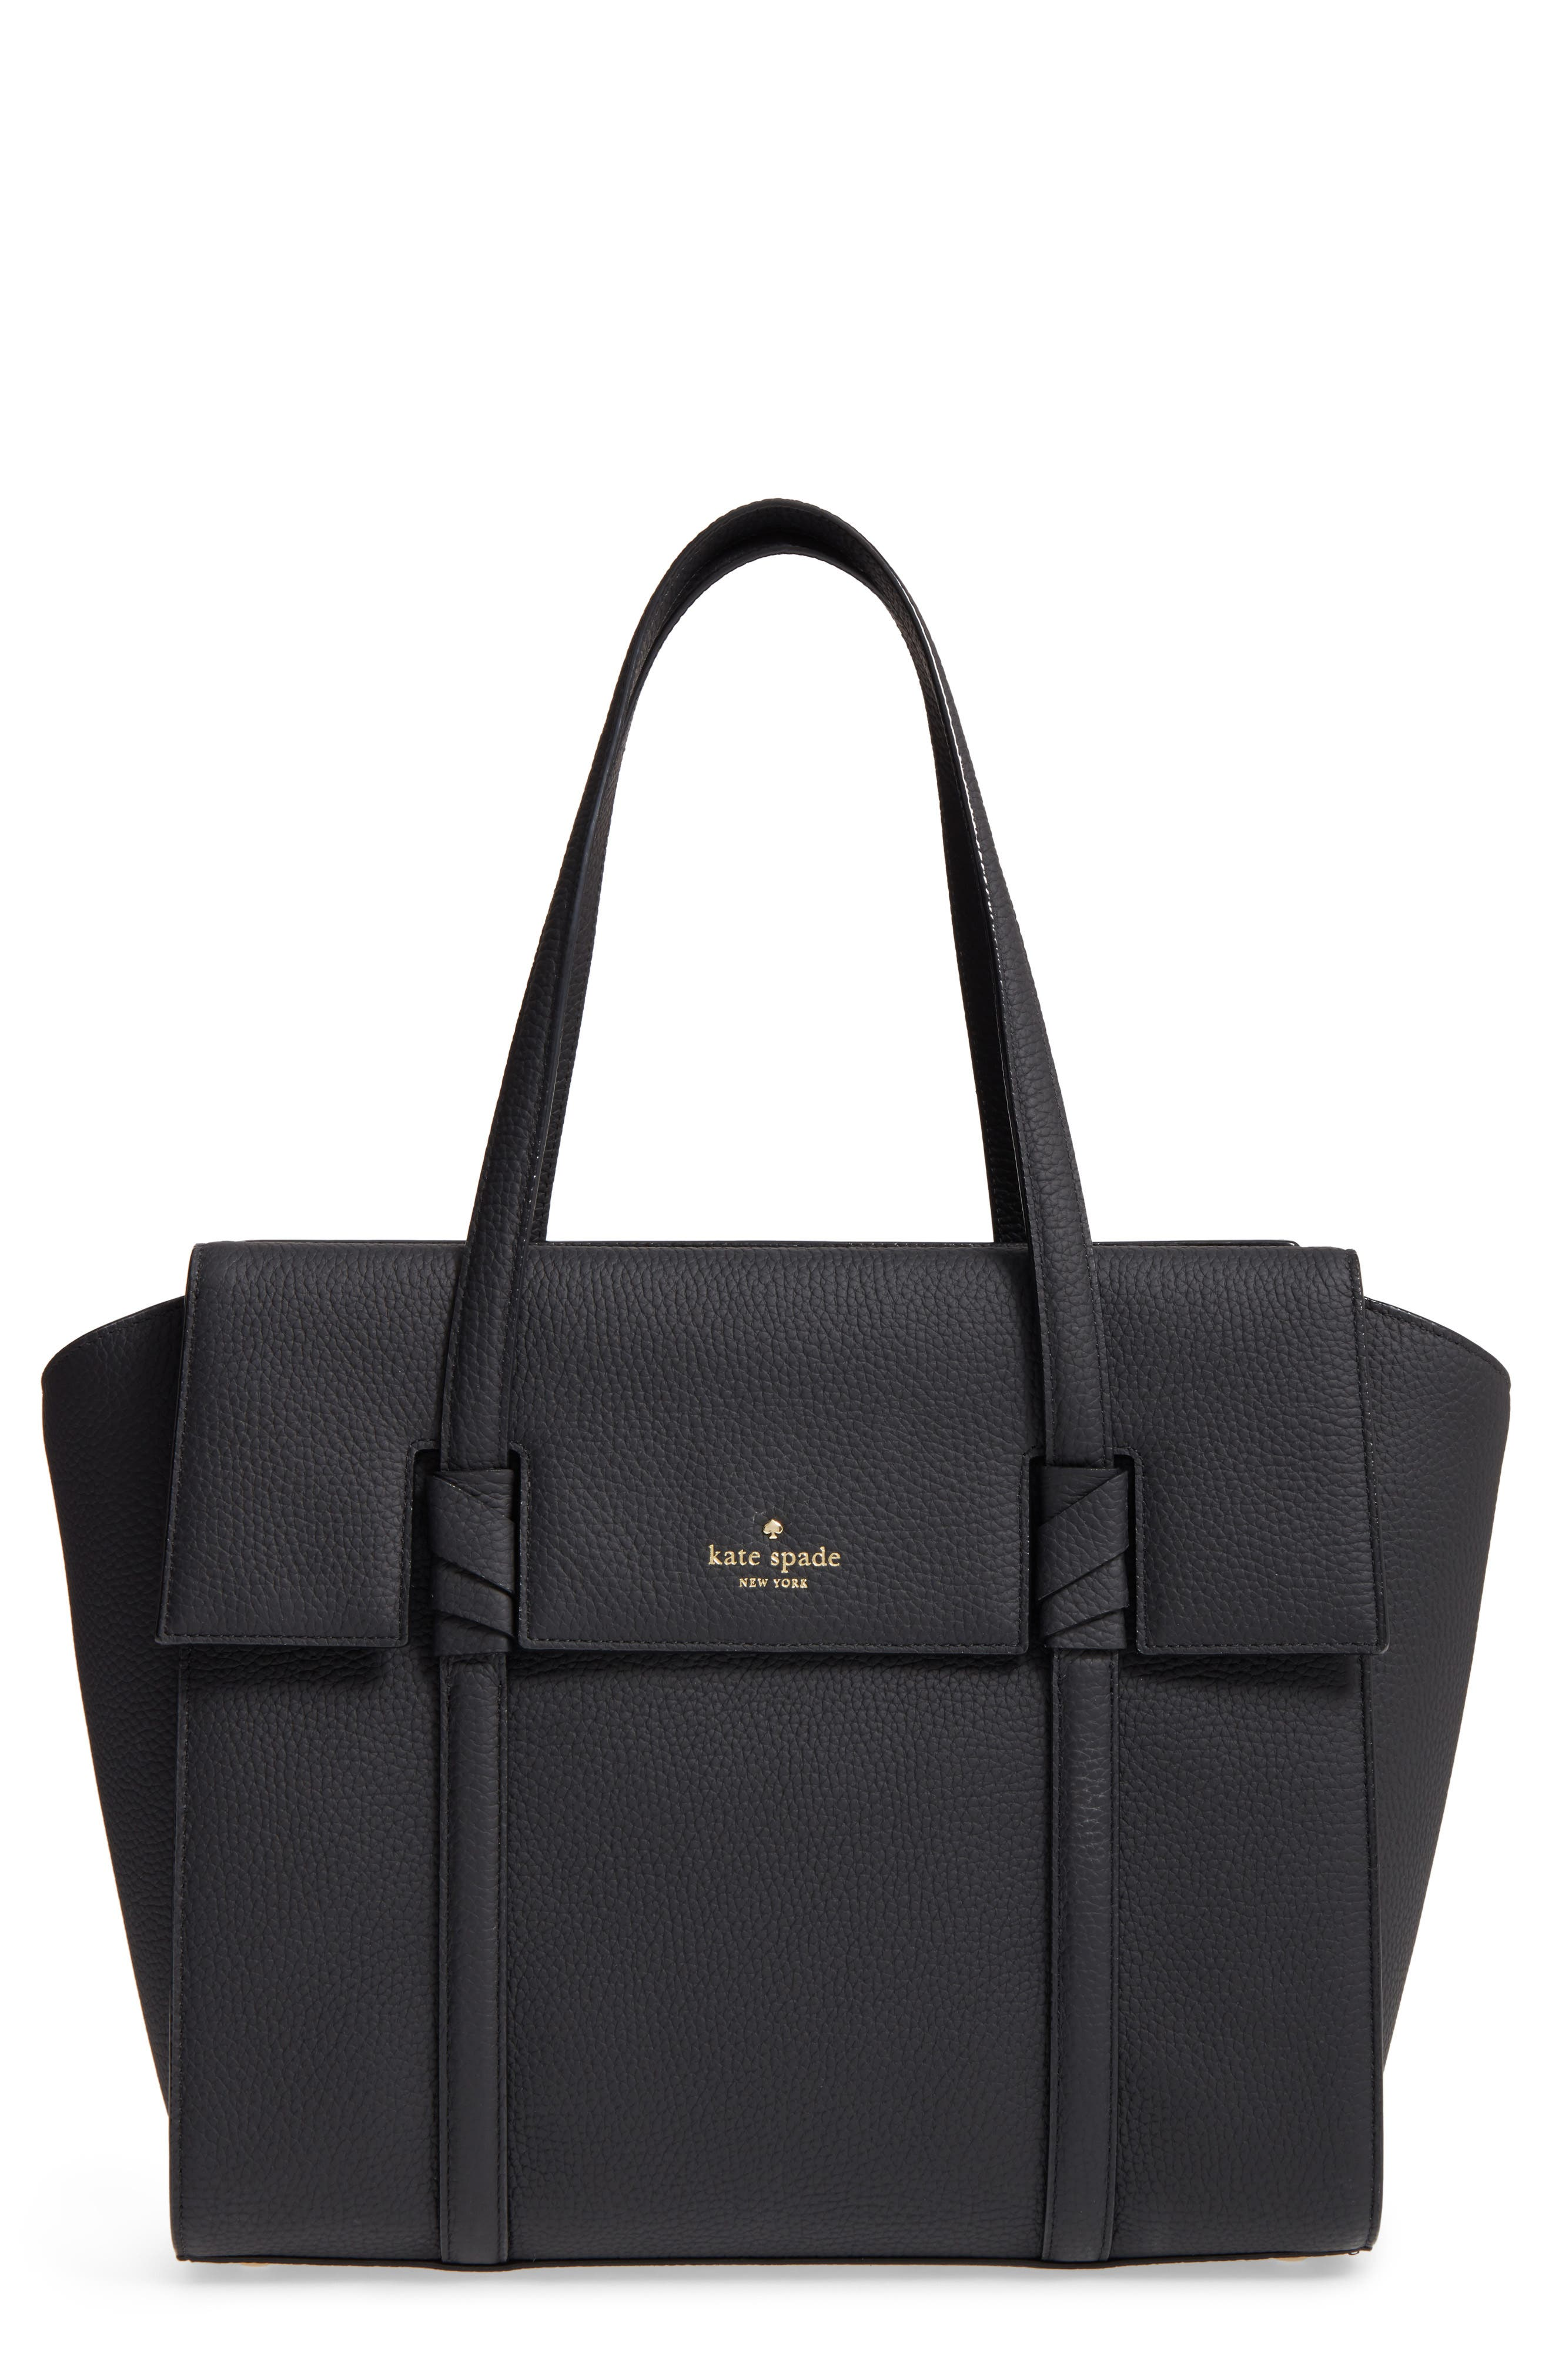 KATE SPADE NEW YORK daniels drive - abigail satchel